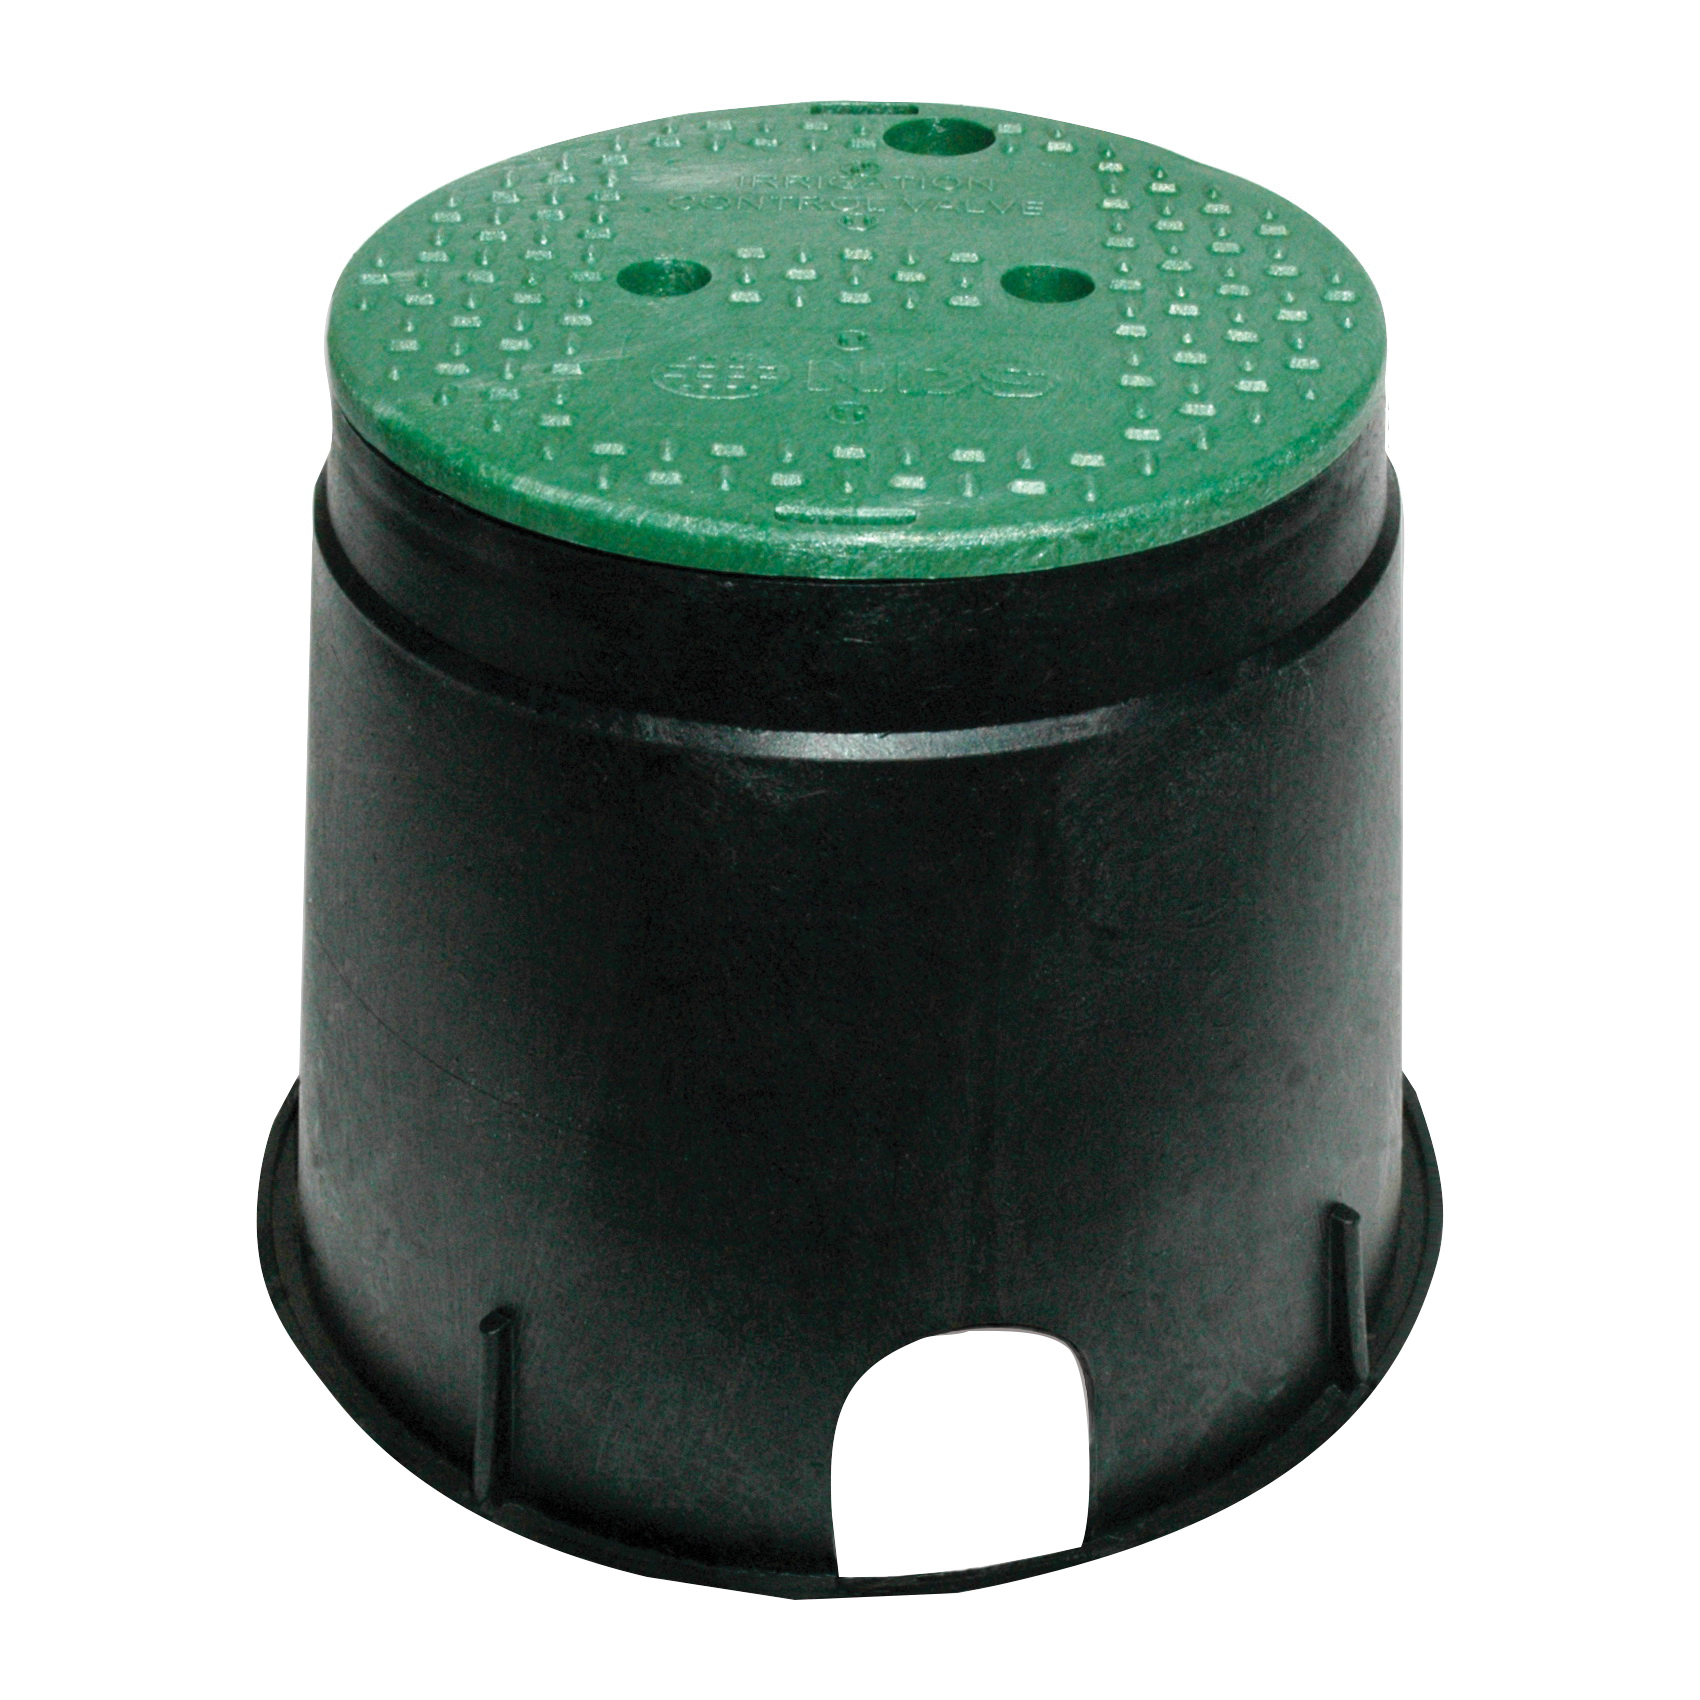 Picture of NDS 111BC Valve Box with Overlapping ICV Cover, 12-7/8 in L, 11-5/8 in H, 2-1/2 x 2-3/4 in Pipe Slots, Polyolefin